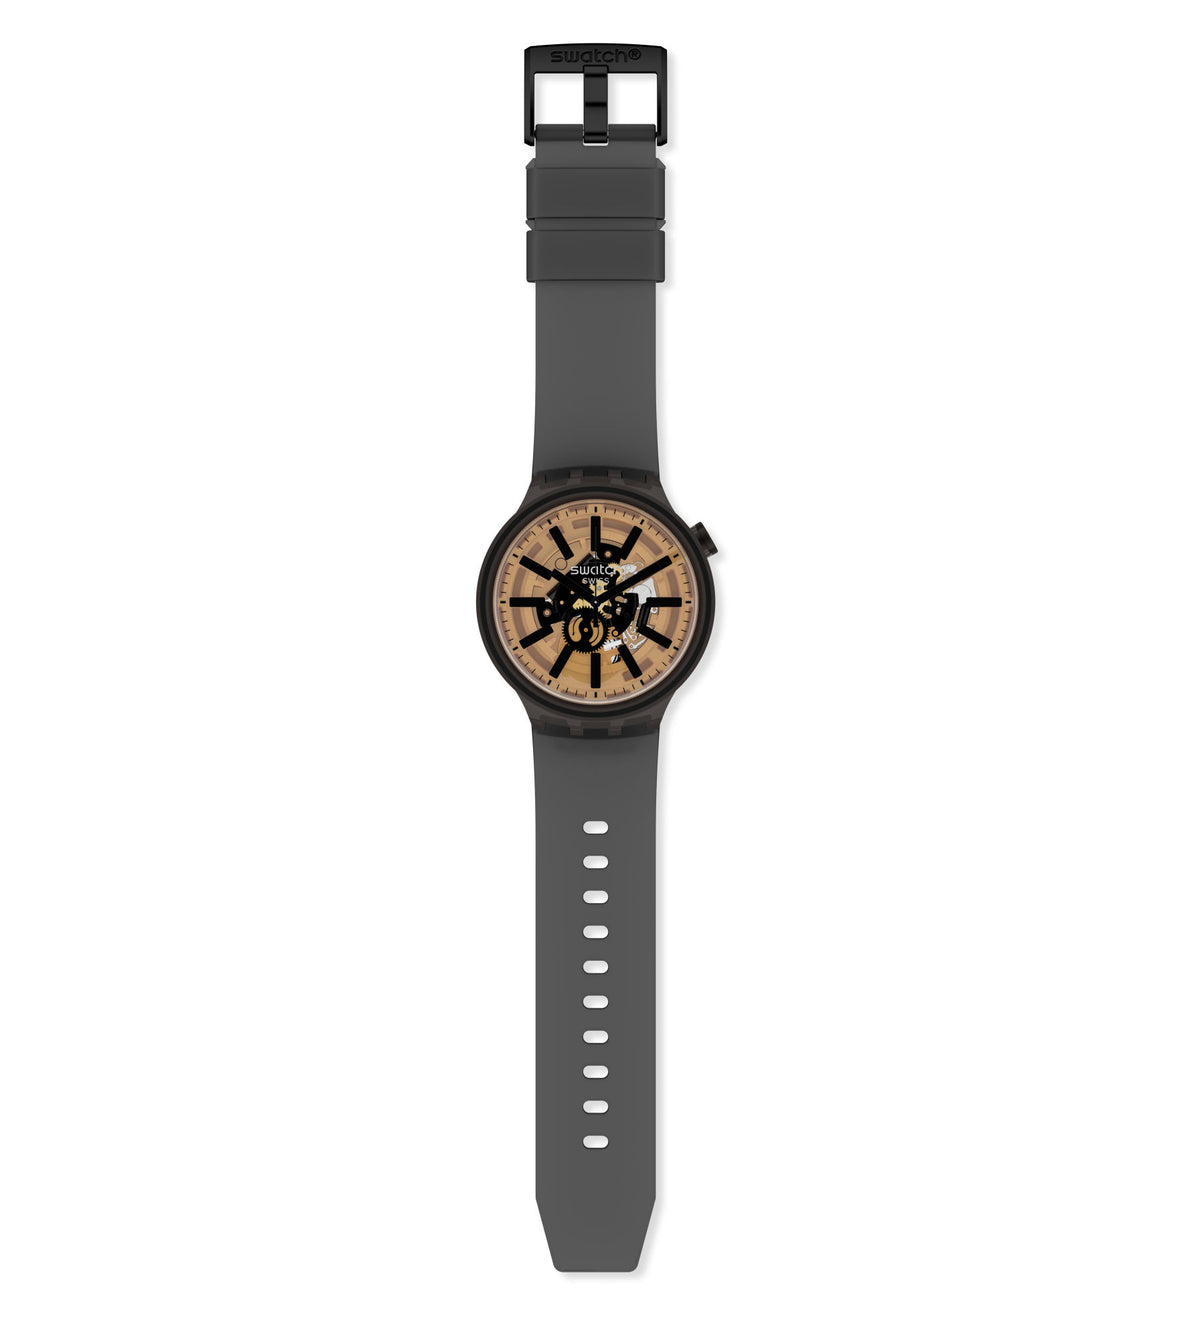 Swatch Watch Big Bold 47mm - Dark Taste